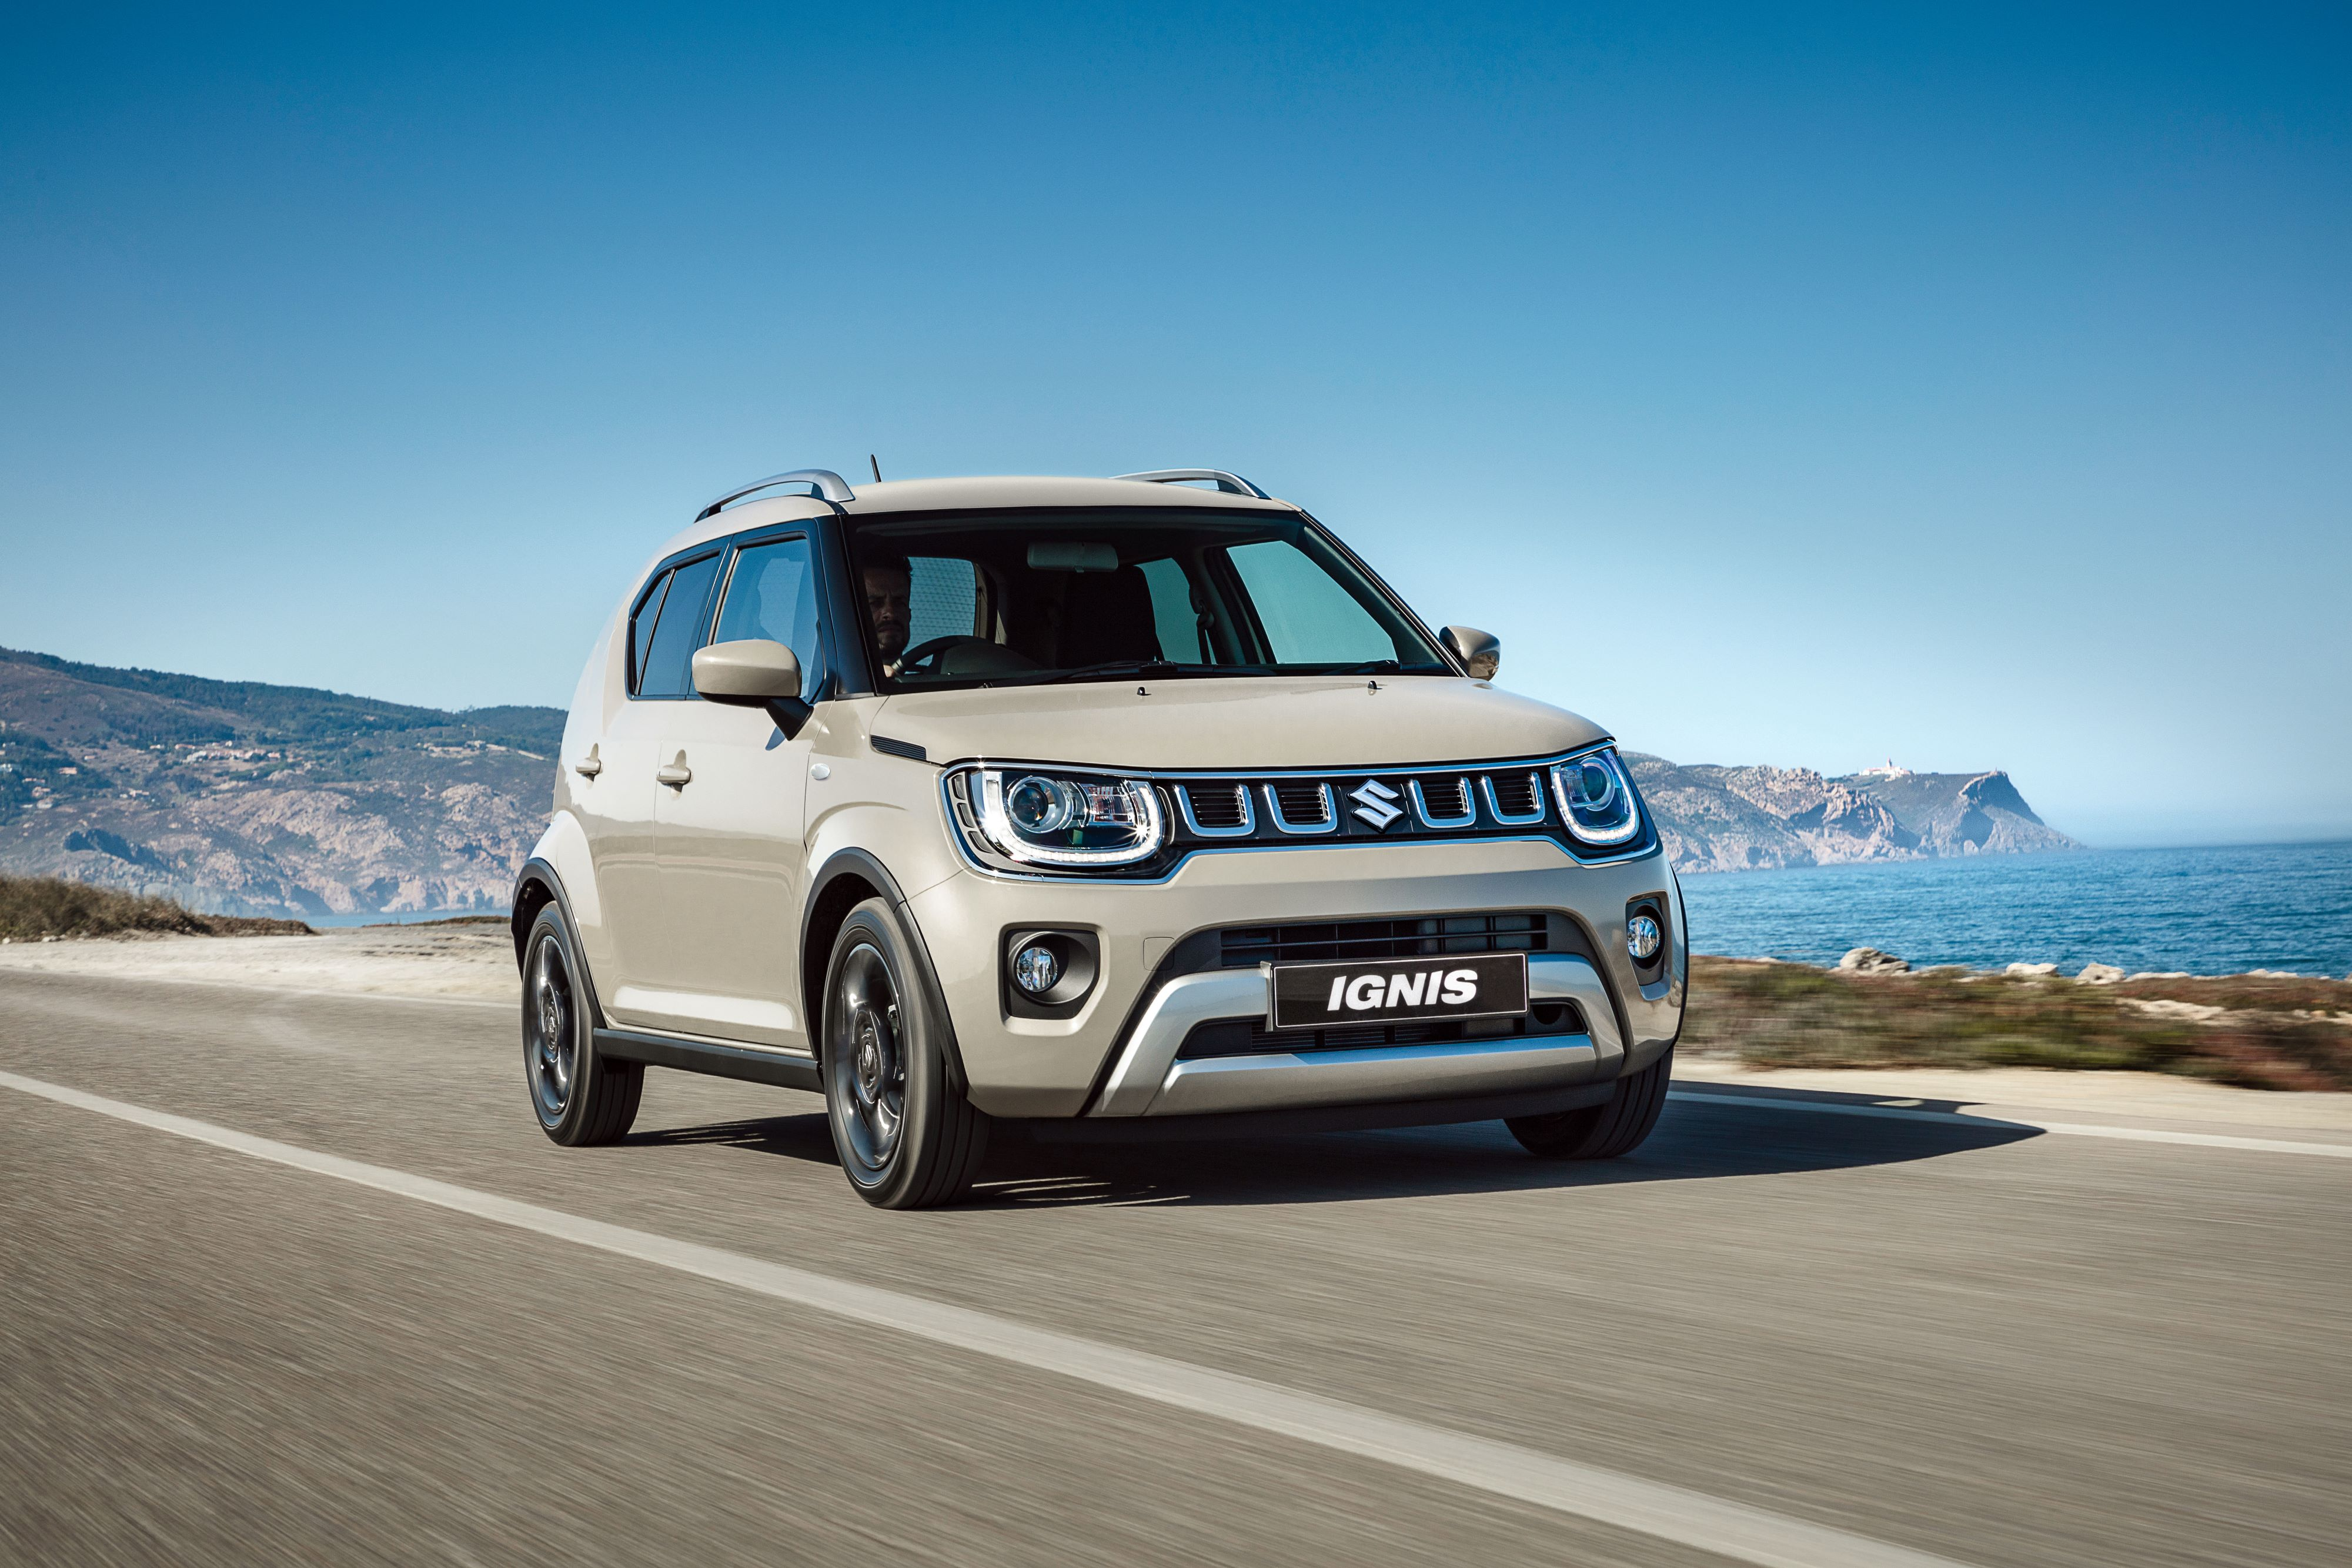 Ignis_Driving_By_Beach